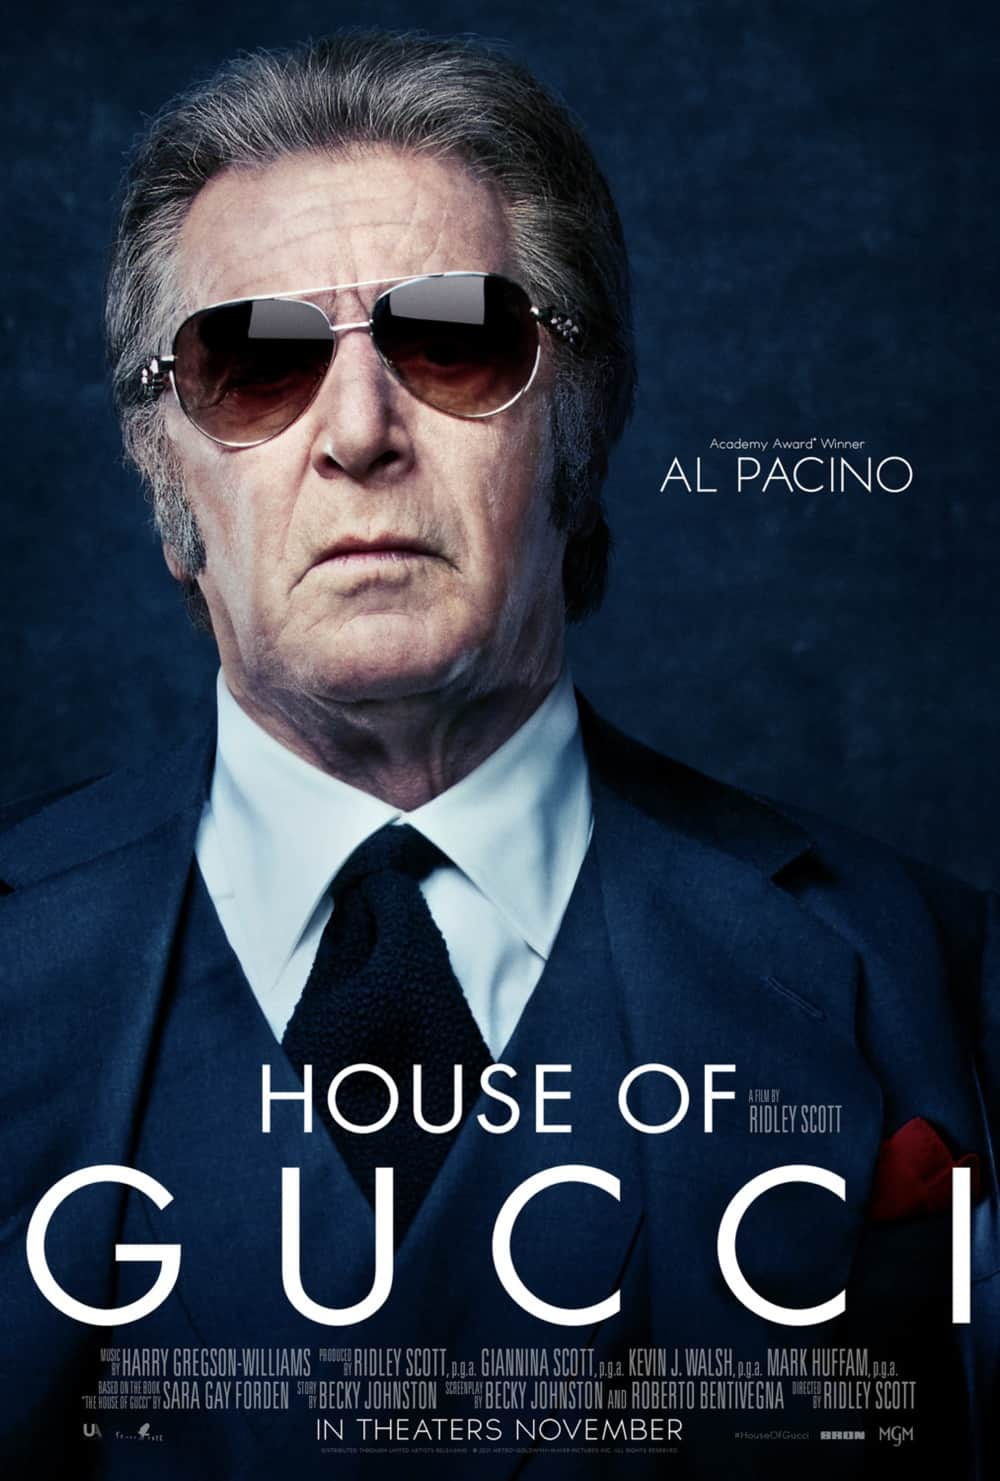 House Of Gucci Al Pacino Character Poster